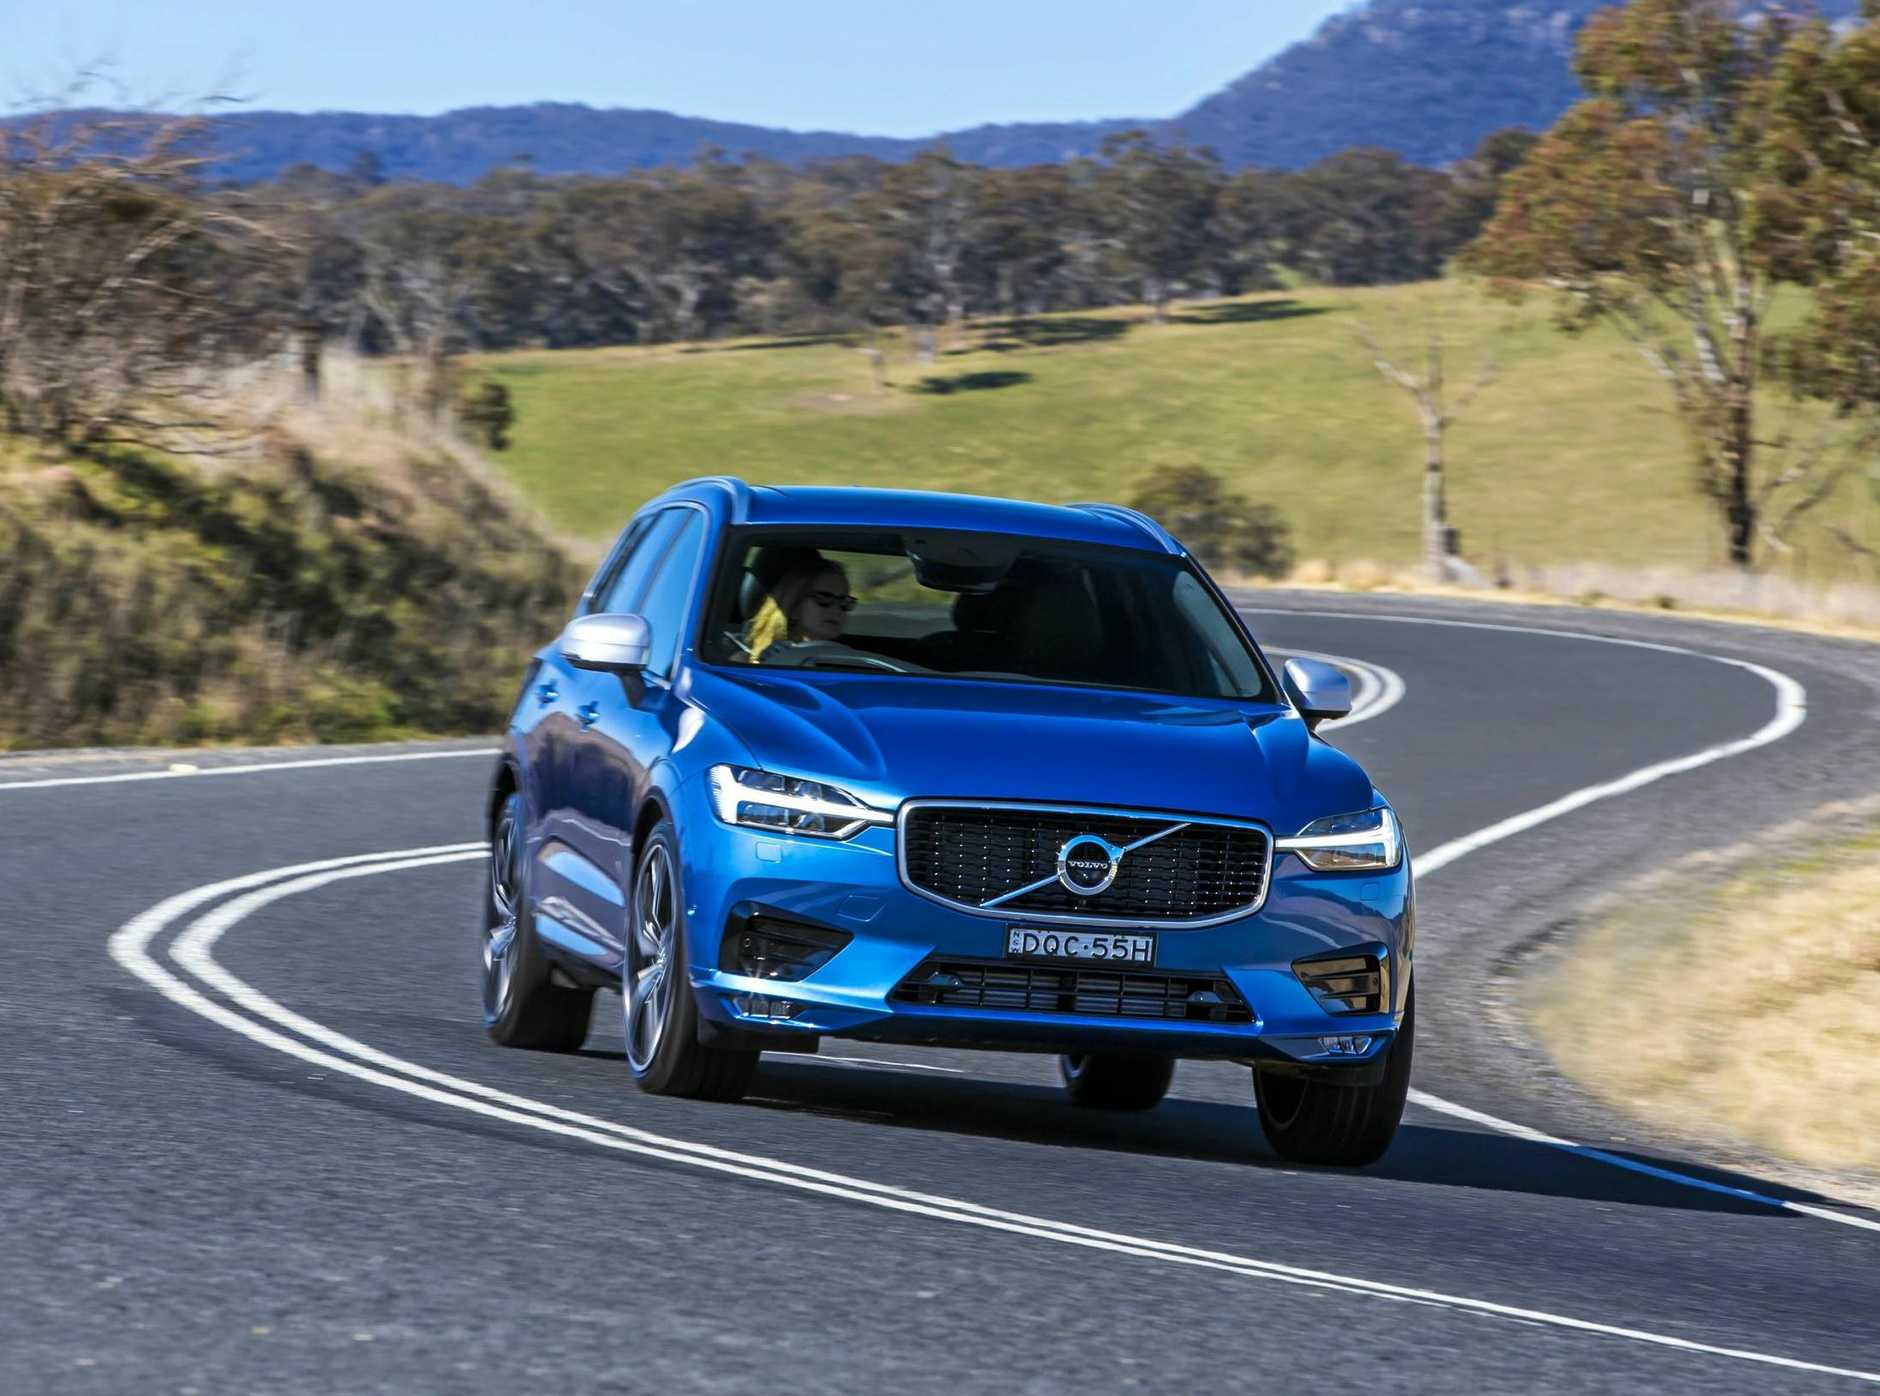 The Volvo XC60 is available in three variants - Momentum, Inscription and the dynamic R-Design - starting from $59,990.